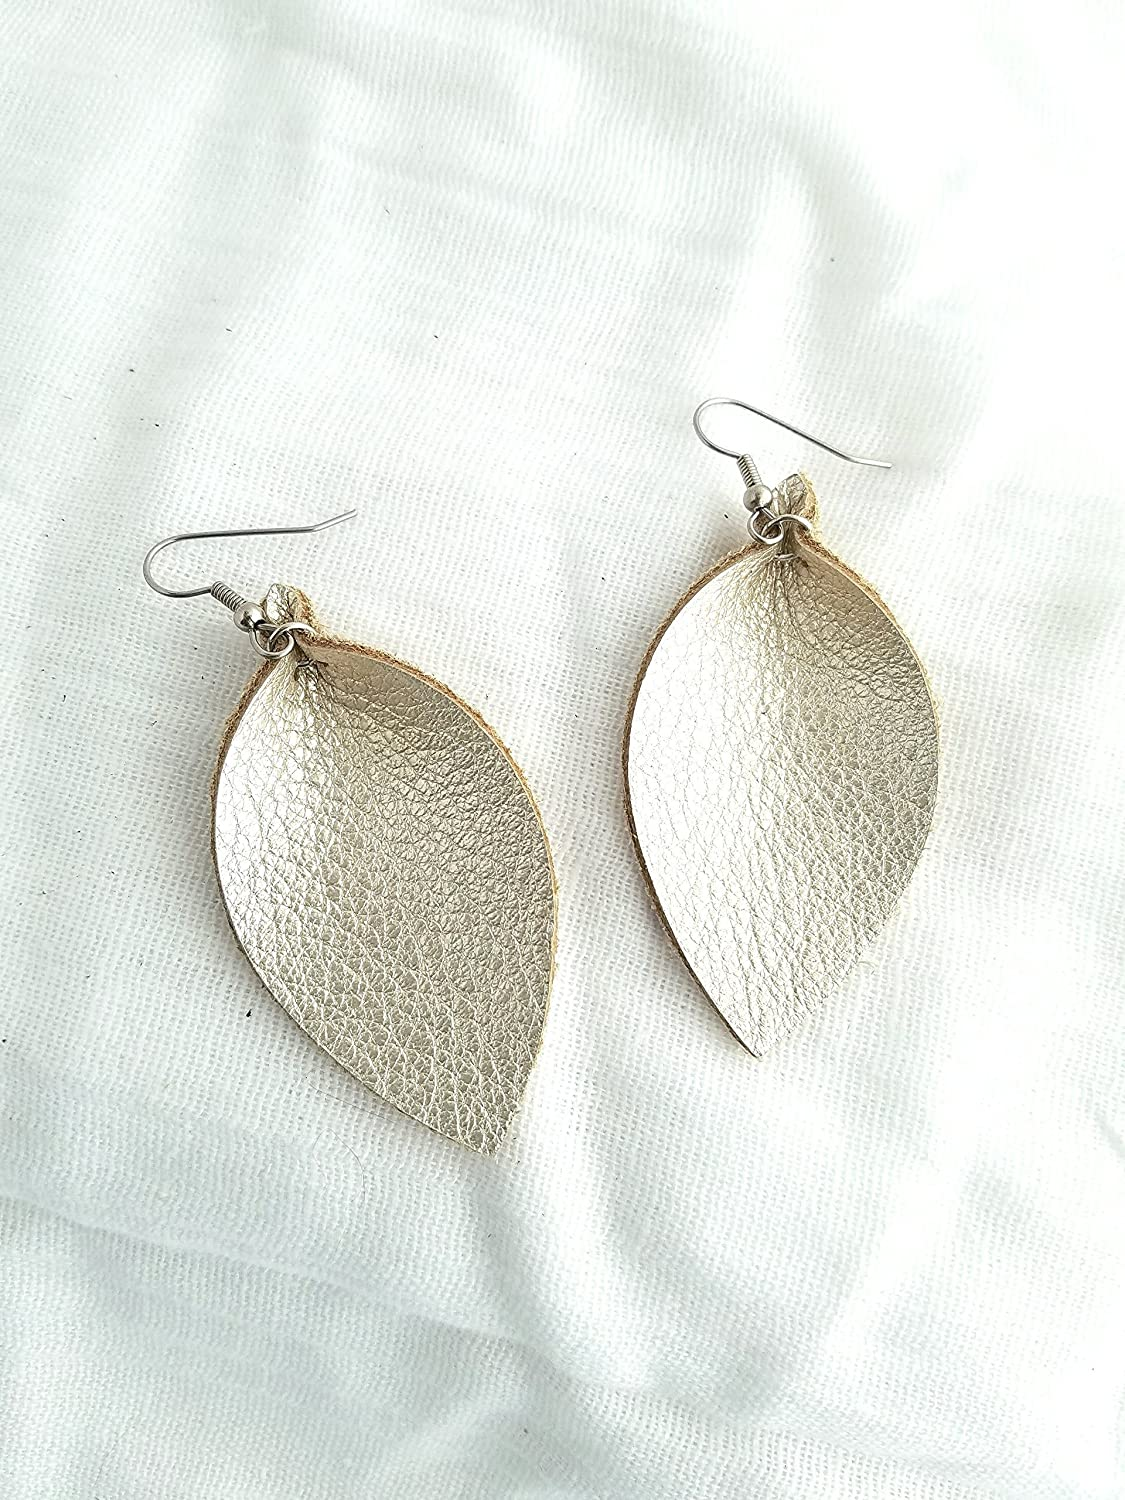 Champagne Metallic/Leather Earrings/FREE SHIPPING/Joanna Gaines/Magnolia Market/Zia/Leaf/2.5x1.25/Hypoallergenic/Spring